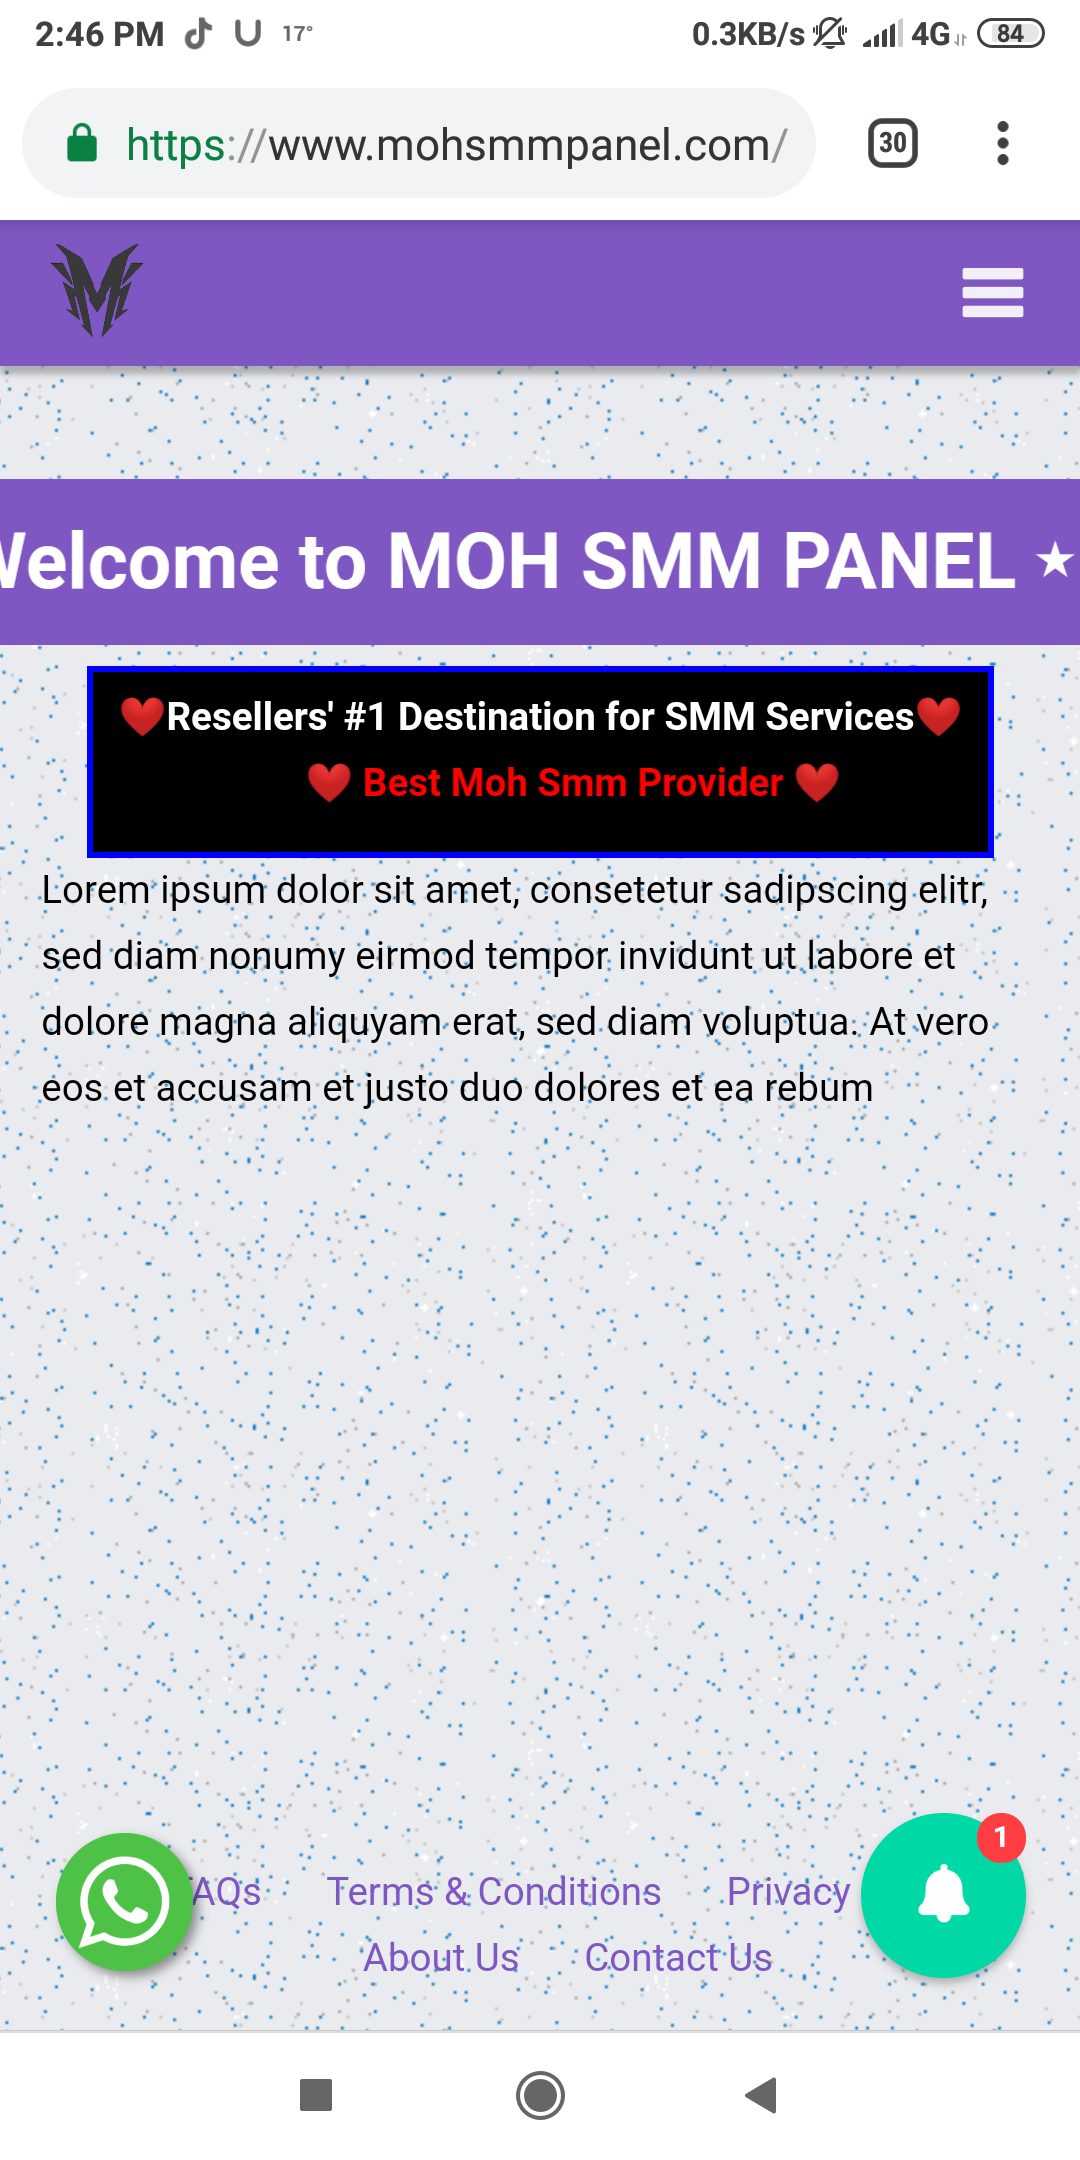 MOH SMM PANEL Android App - Download MOH SMM PANEL